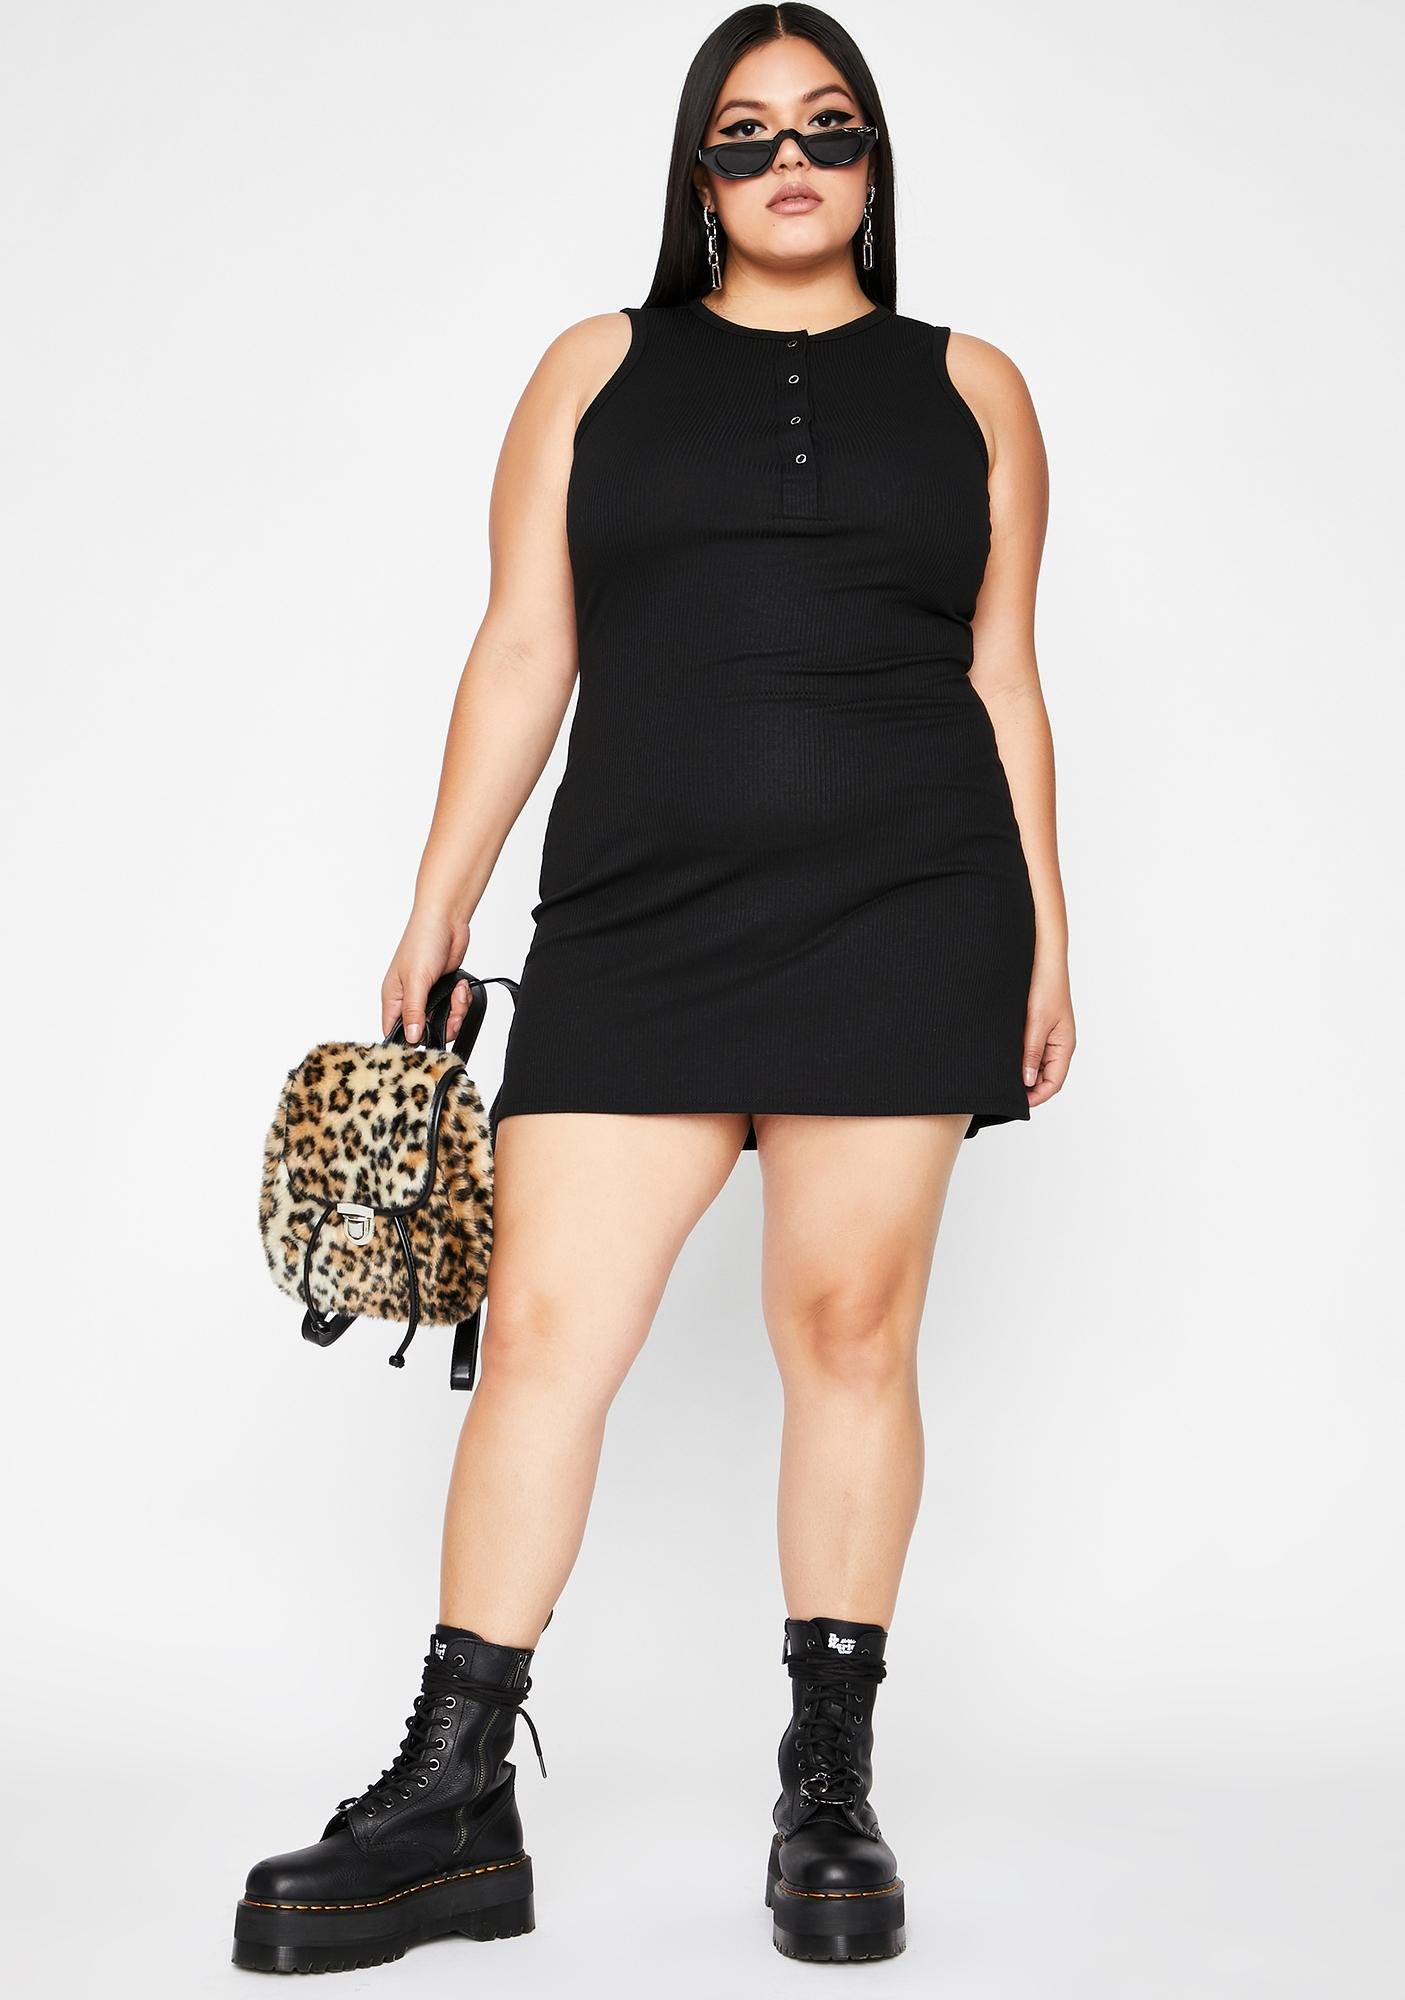 Cozy Couture Tank Dress